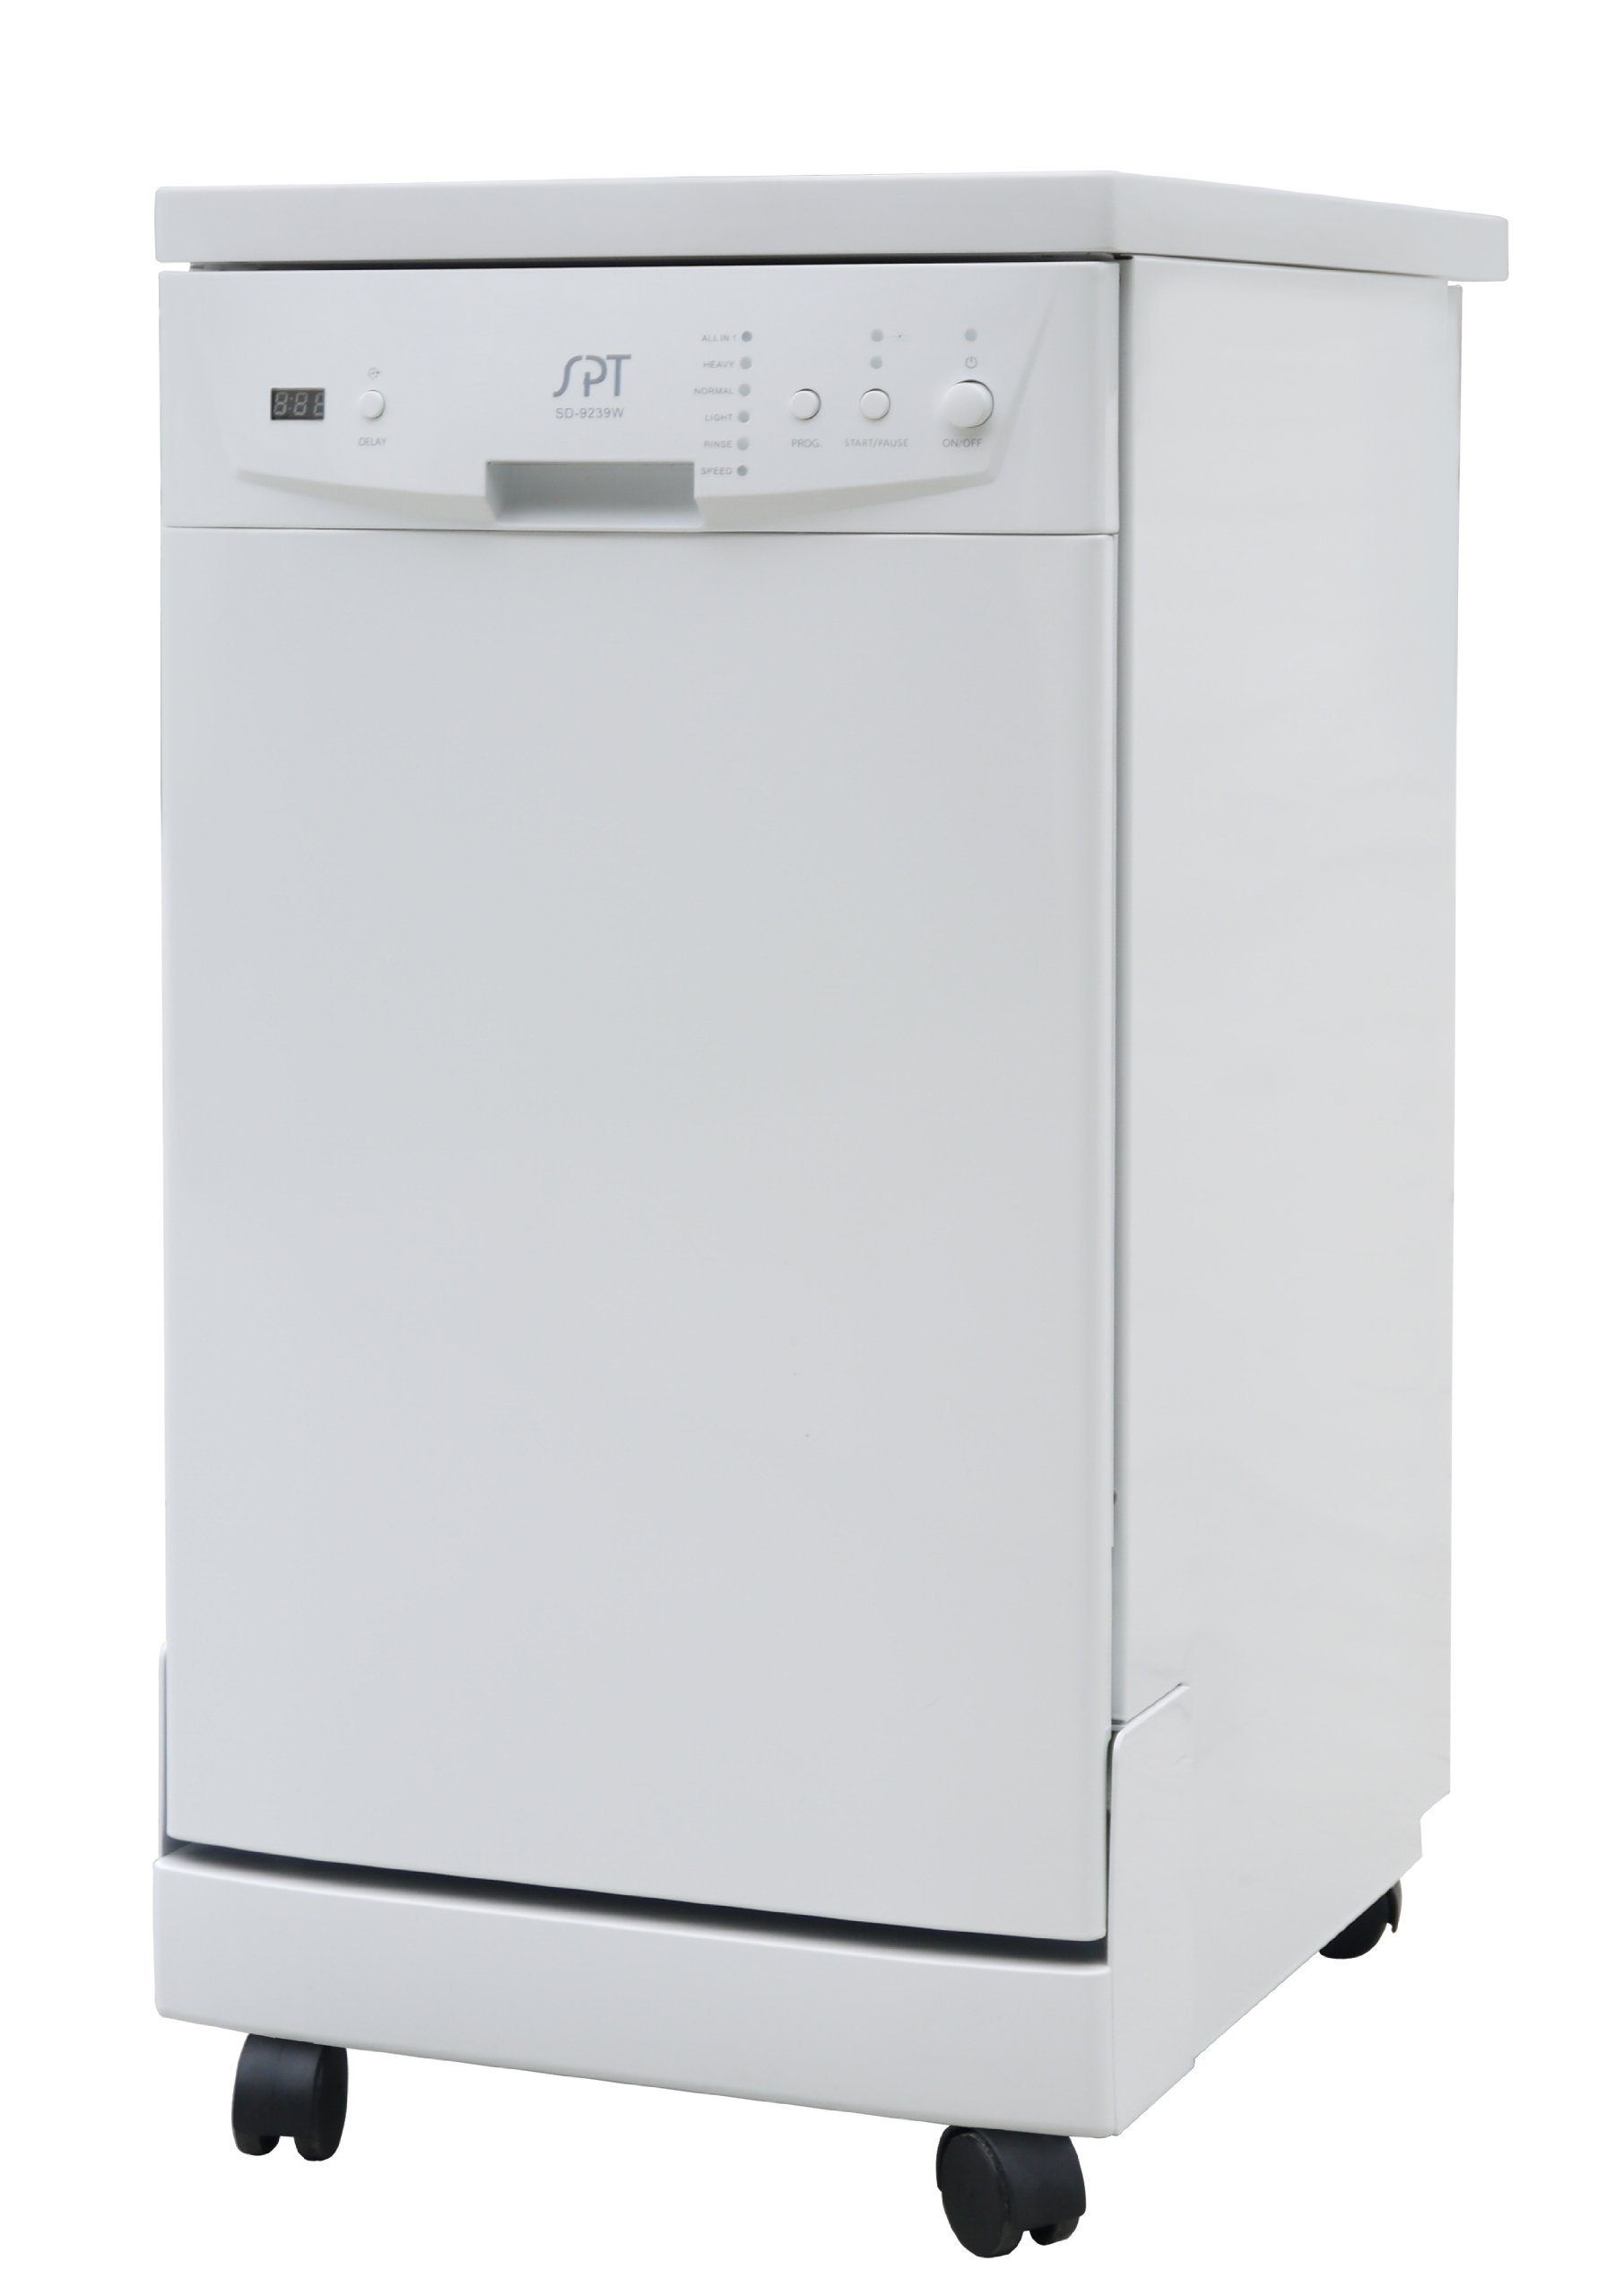 SPT SD-9241W Energy Star Portable Dishwasher, 18-Inch, White by SPT